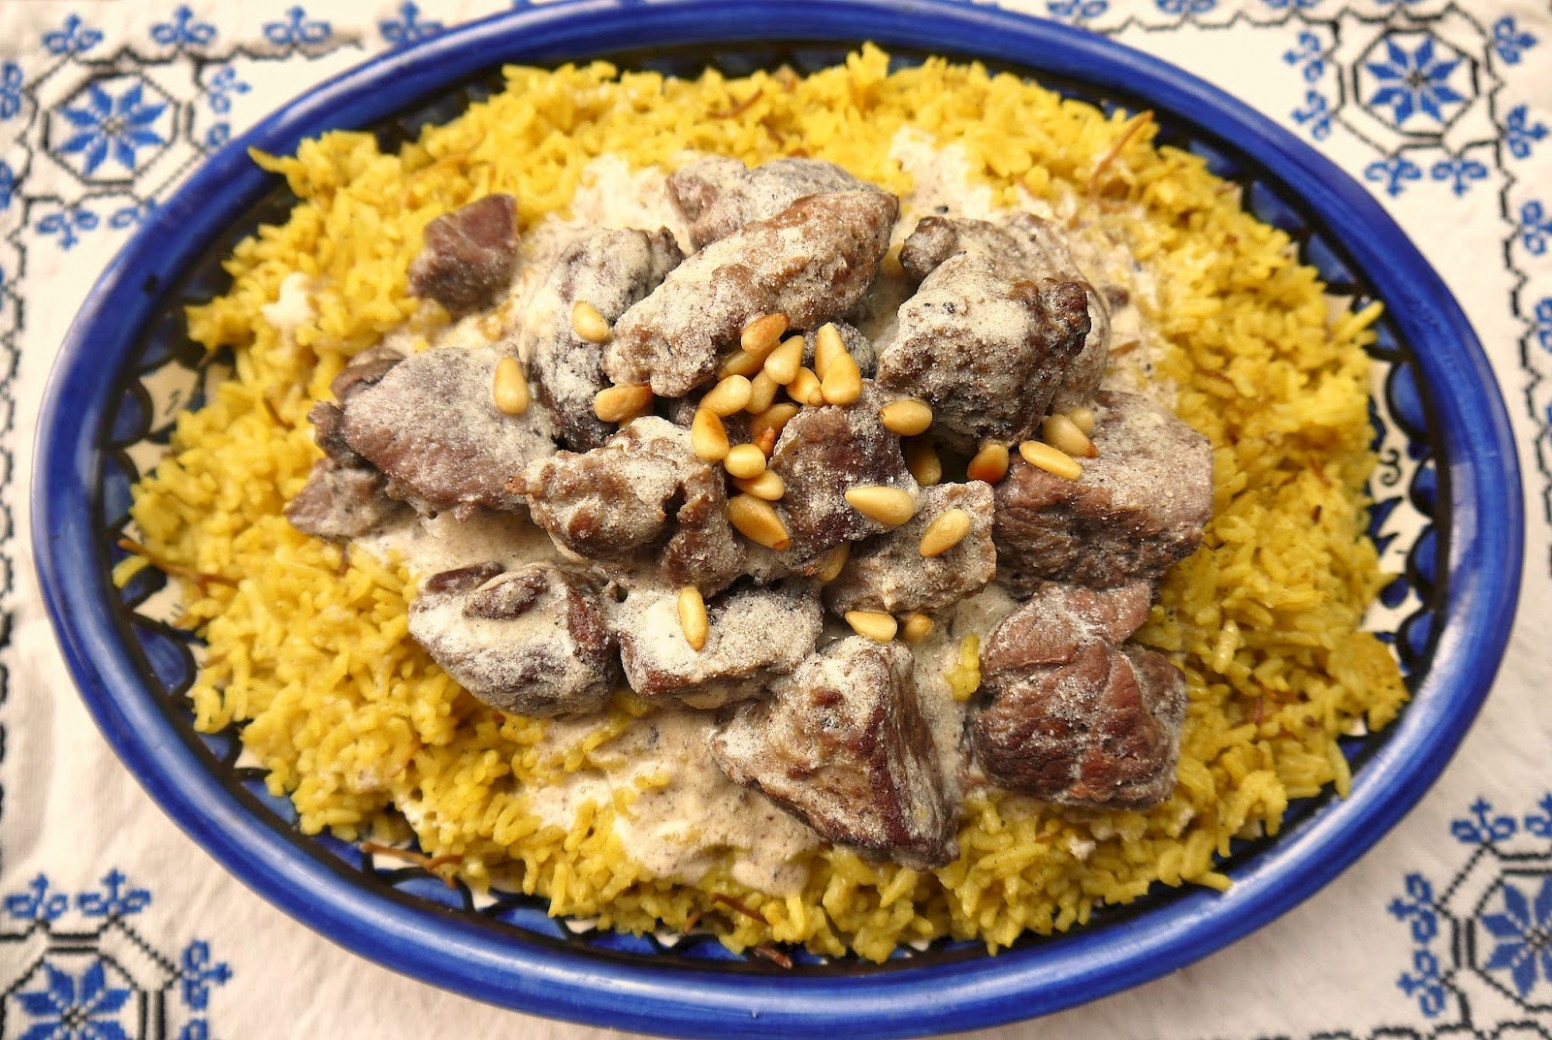 jordanian food mansaf recipe | Geo Designs Unlimited - recipes jordanian food